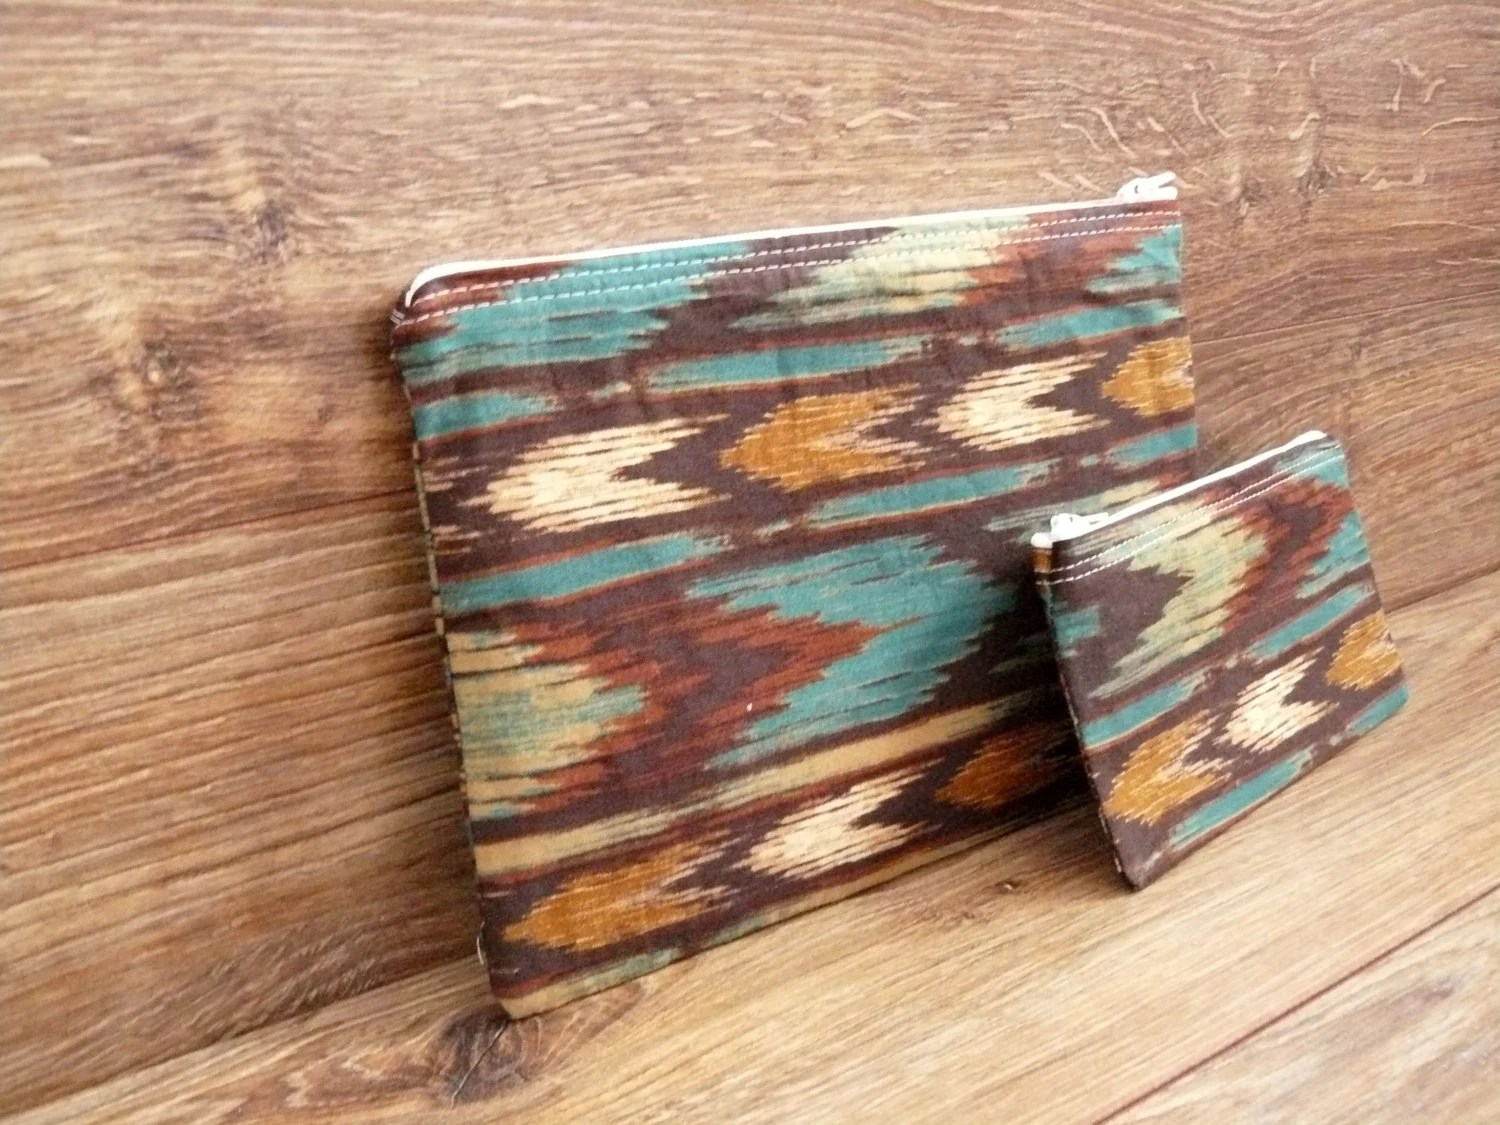 Kiva - Chevron Arrow Zipper Pouch Gift set - Cosmetics or makeup, travel, wallet -  Native American, Southwestern pattern - WillowAndSparrow